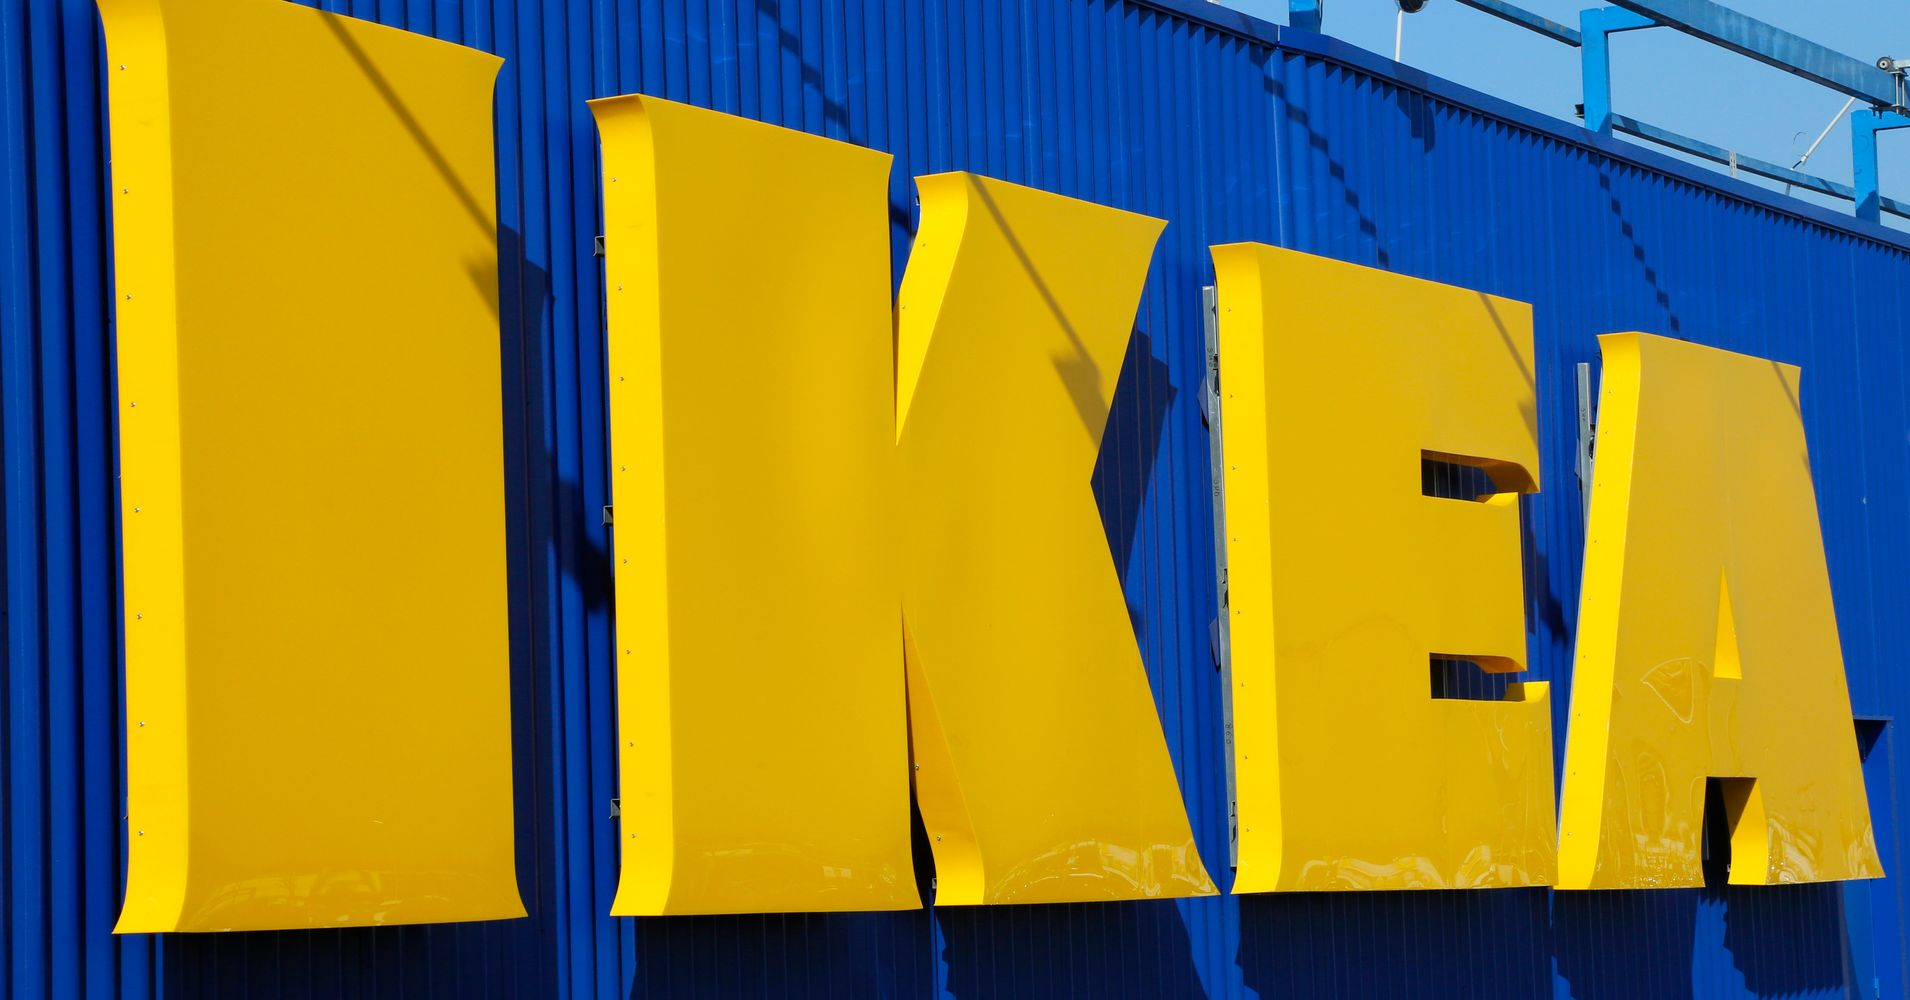 knife attack in swedish ikea kills at least two huffpost. Black Bedroom Furniture Sets. Home Design Ideas